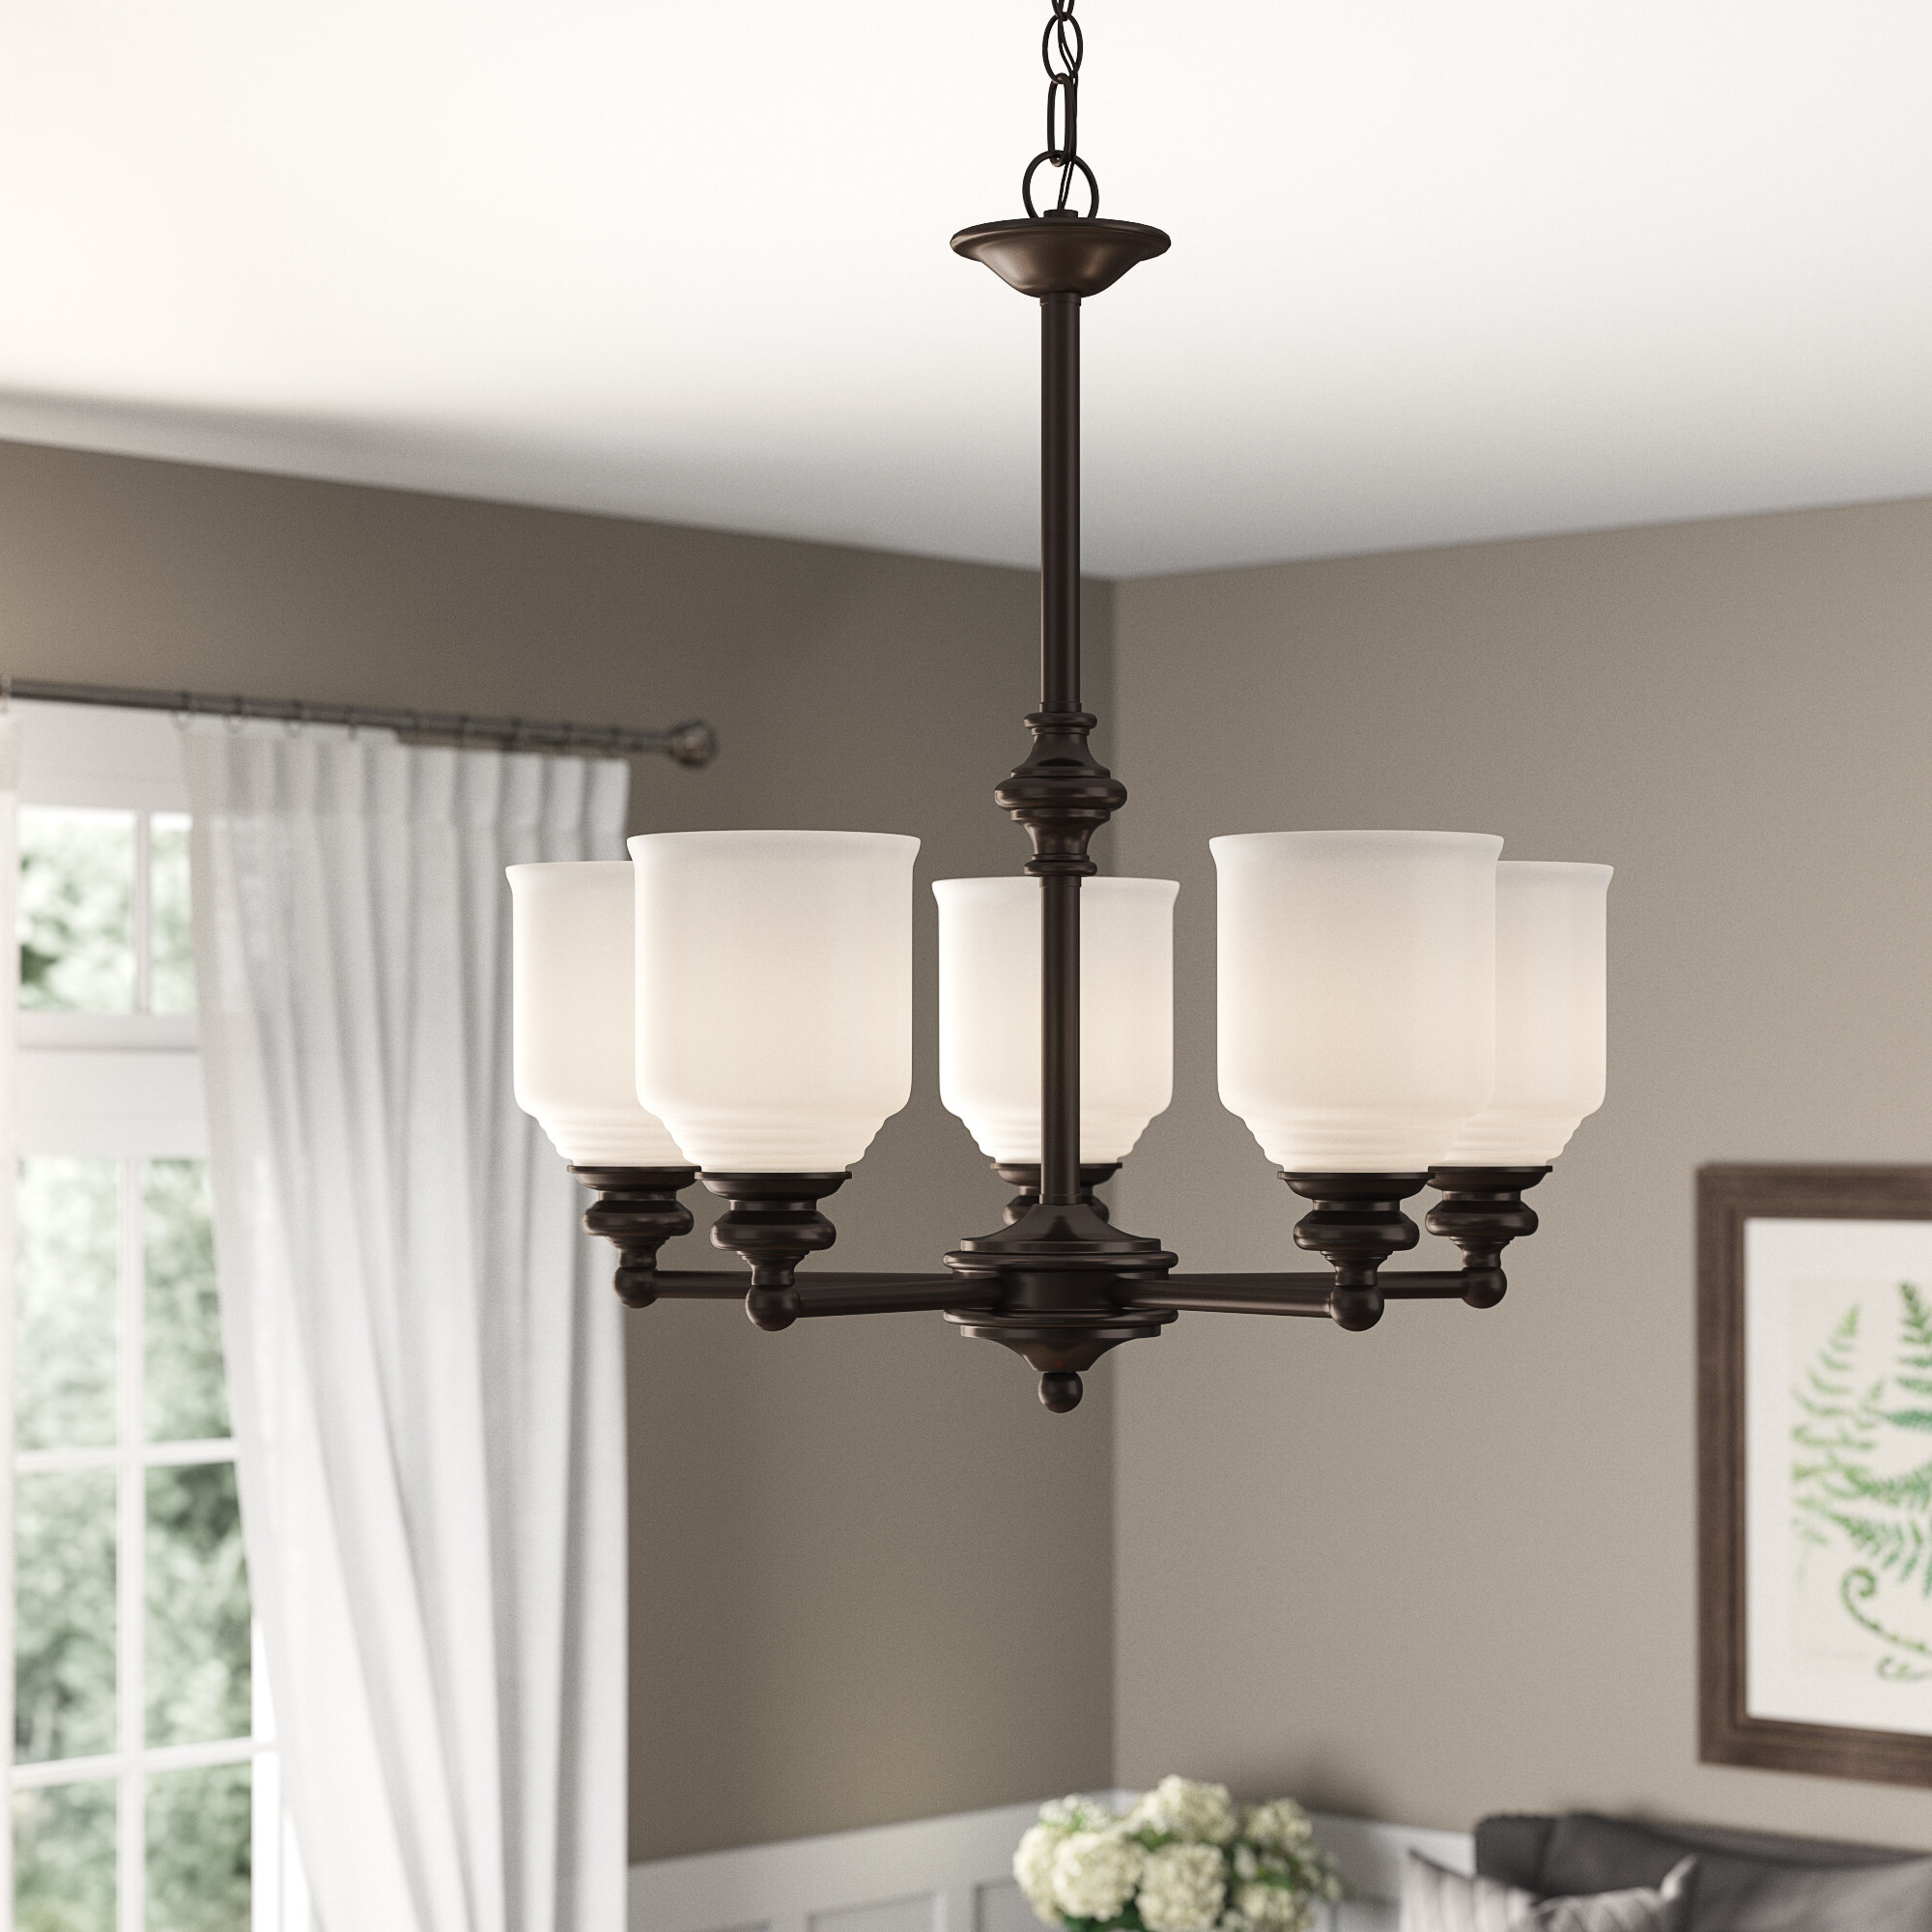 Popular Alayna 4 Light Shaded Chandeliers In Fanshaw 5 Light Shaded Chandelier (View 16 of 25)